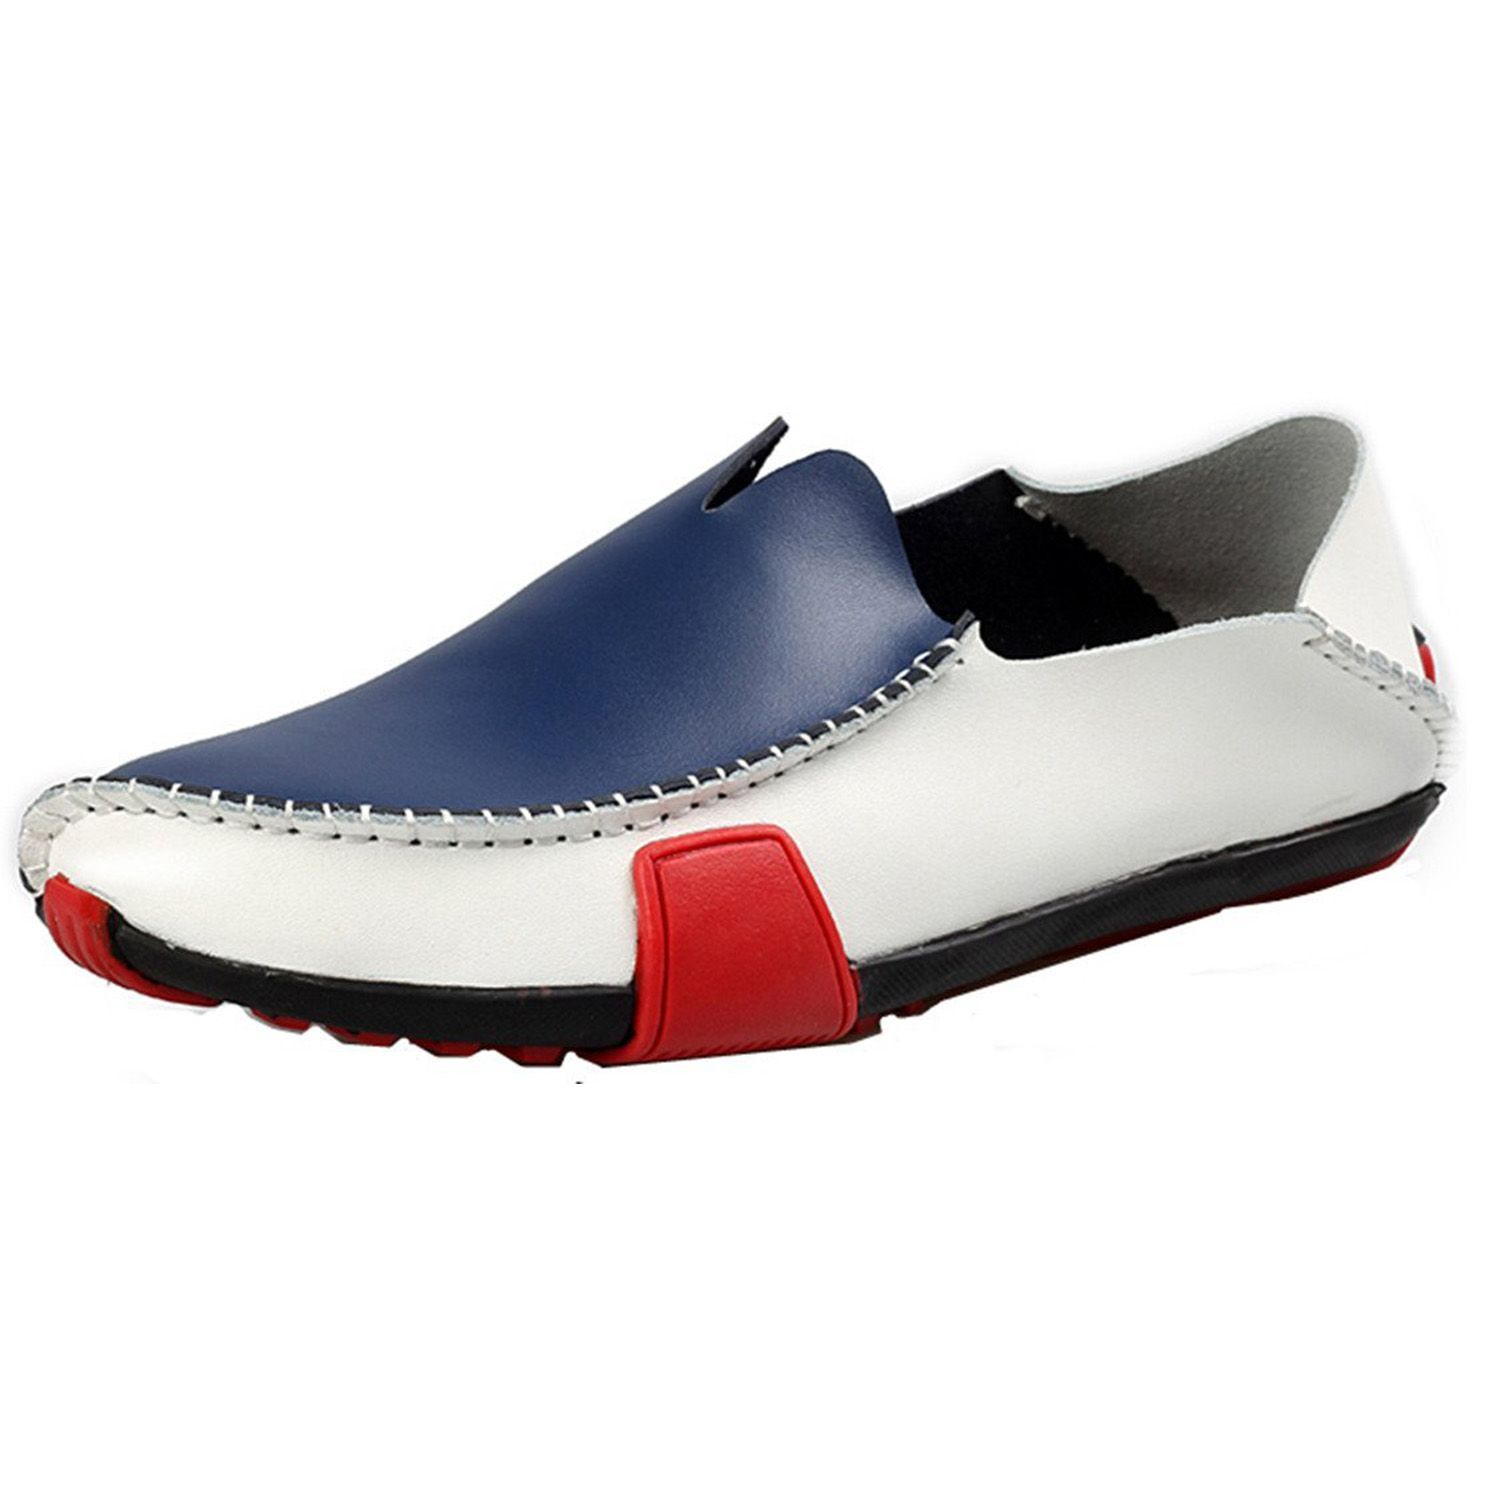 00e307242f4b3 Znpnxn Men's Casual Leather Driving Shoes Low Top Slip-on Loafer ...